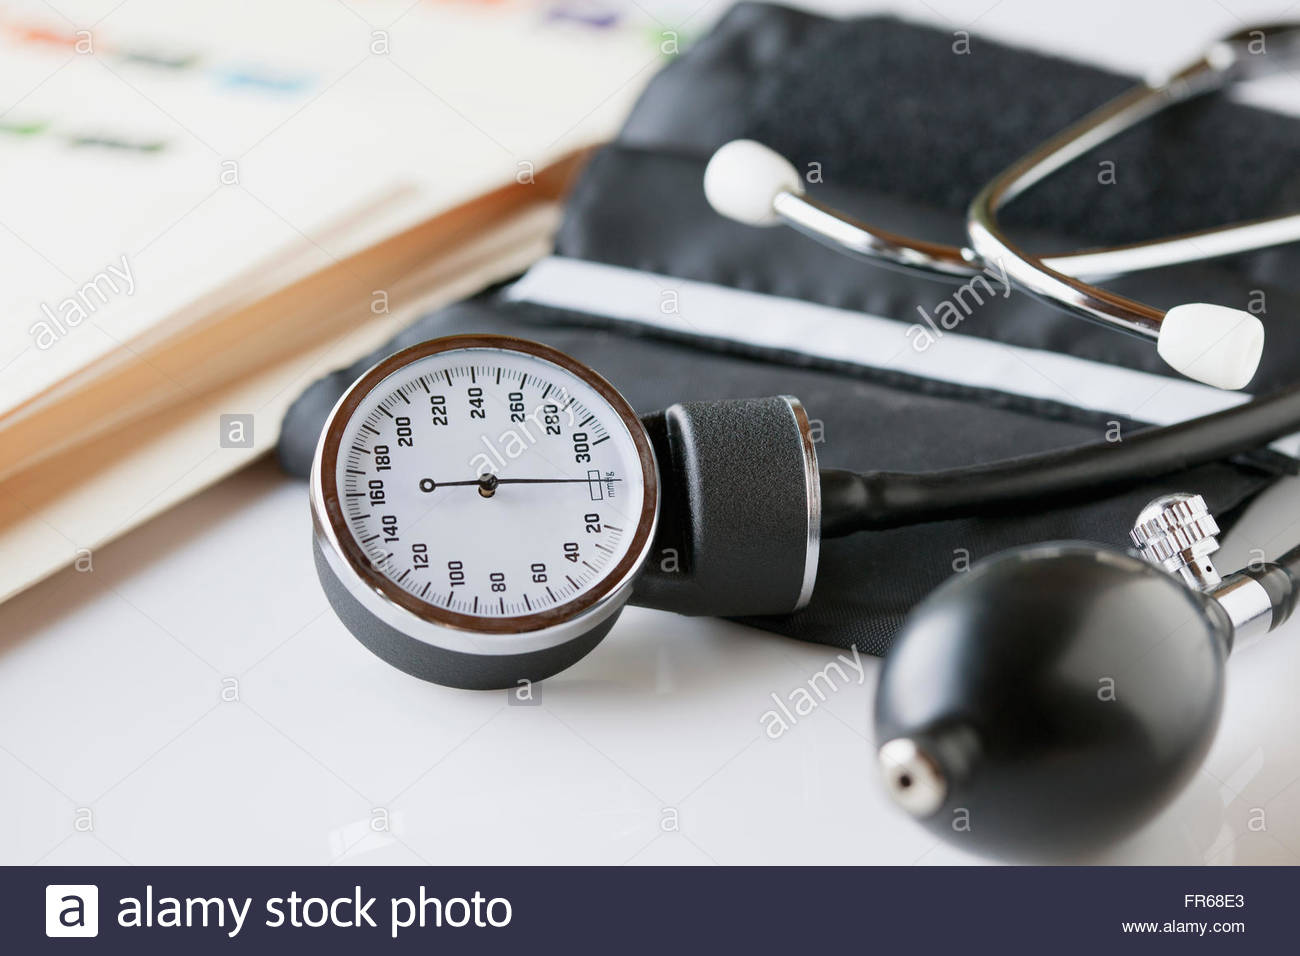 closeup view of blood pressure gauge and cuff - Stock Image